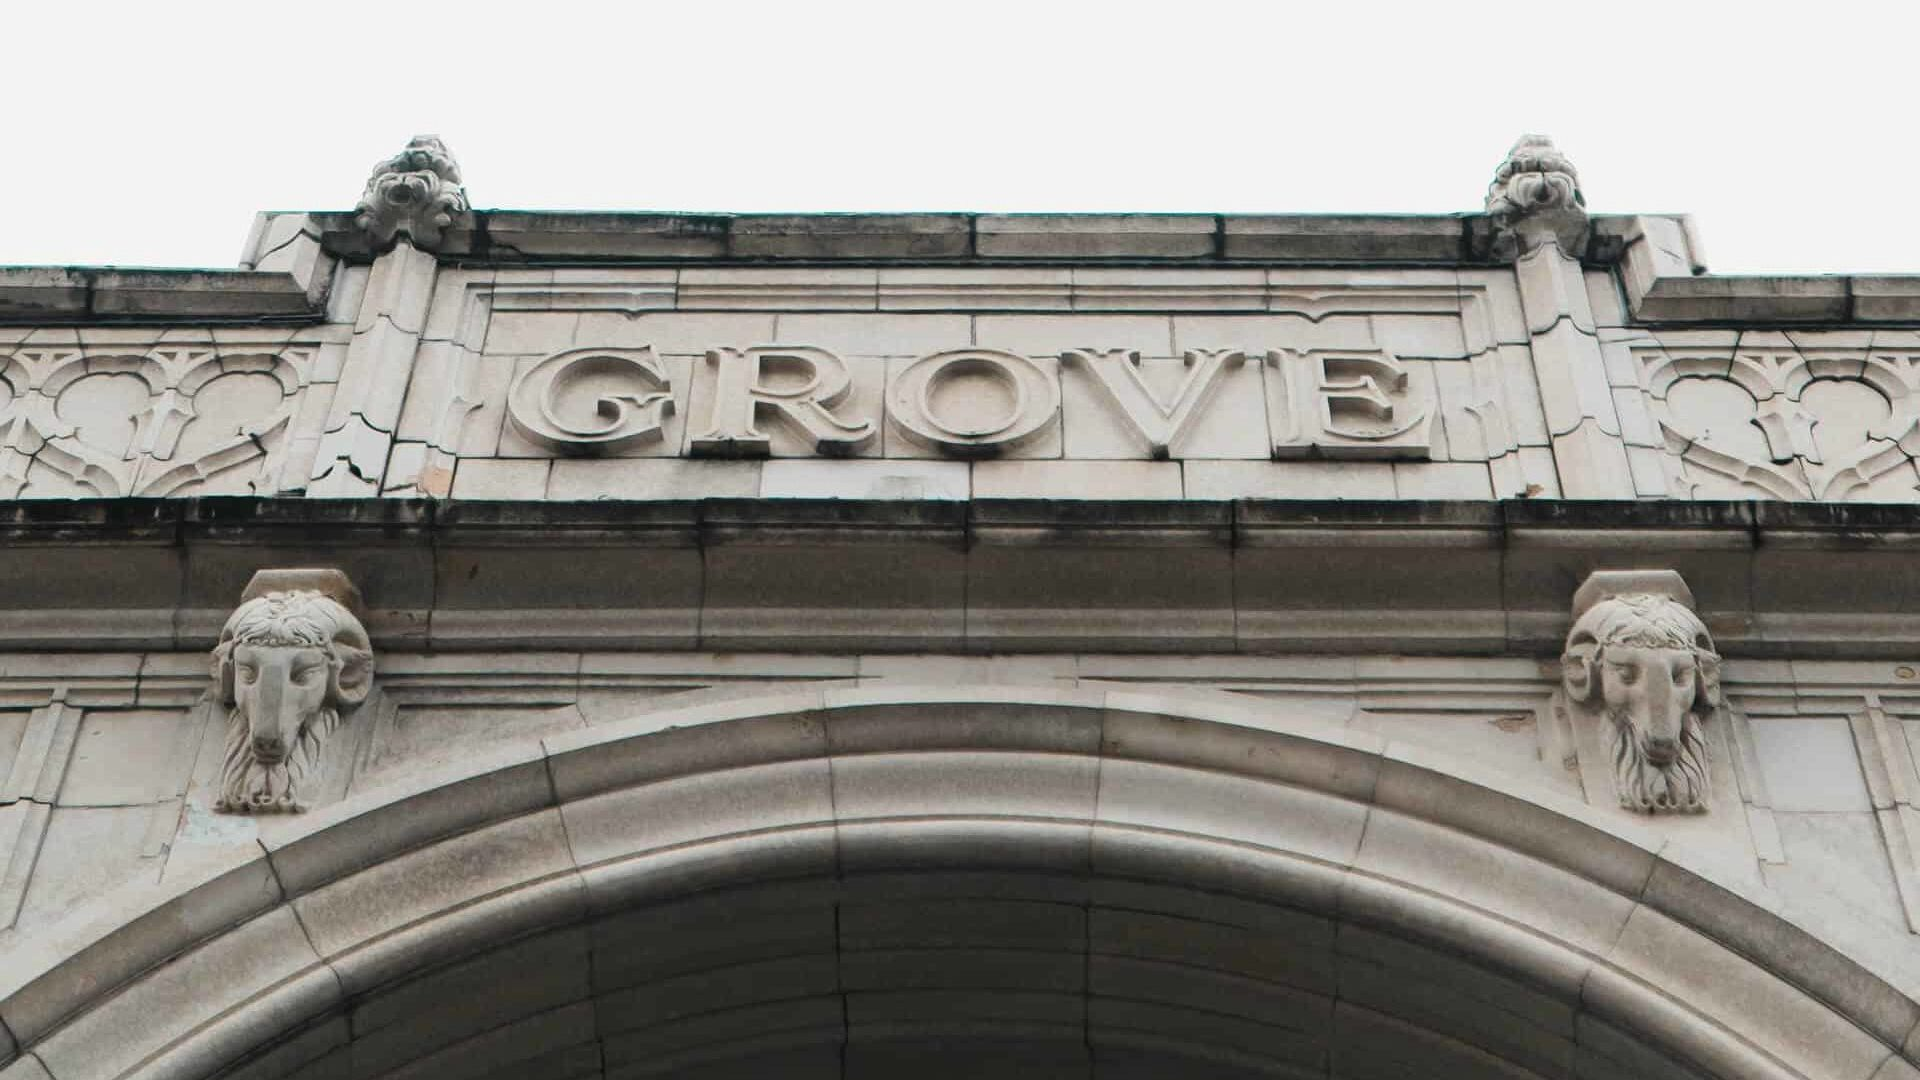 photo of grove arcade arch looking up